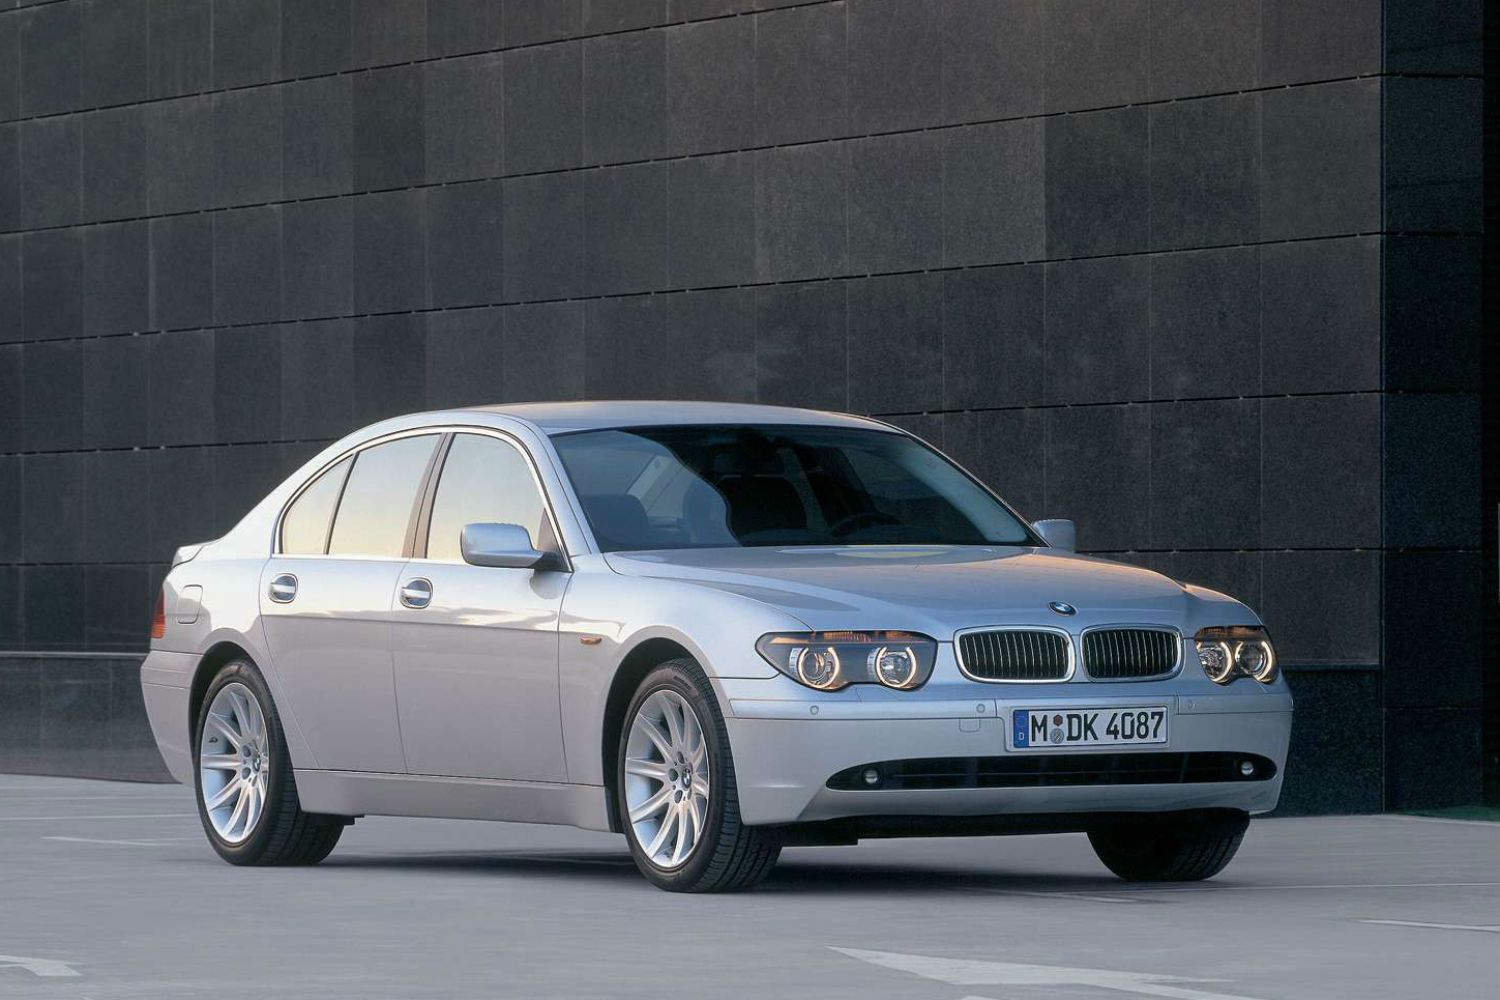 The worst cars from the year 2000 - Page 15 of 24 - Sportyou